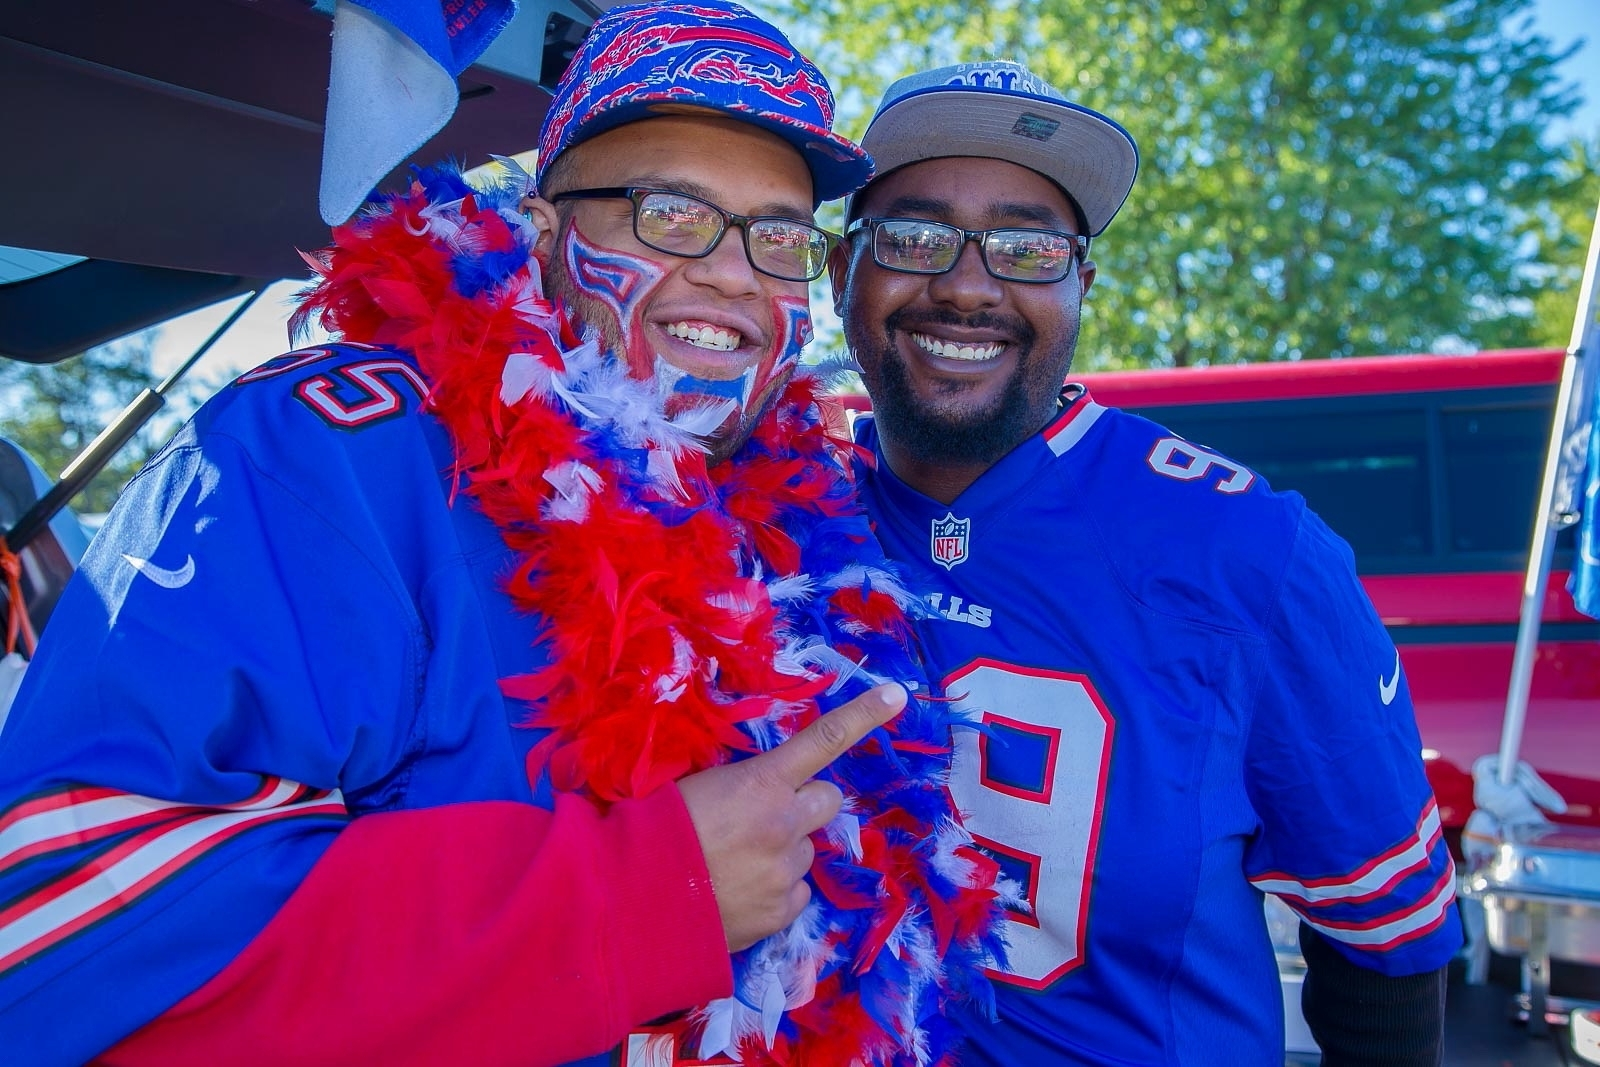 Smiles at the Bills vs Cardinals Tailgate